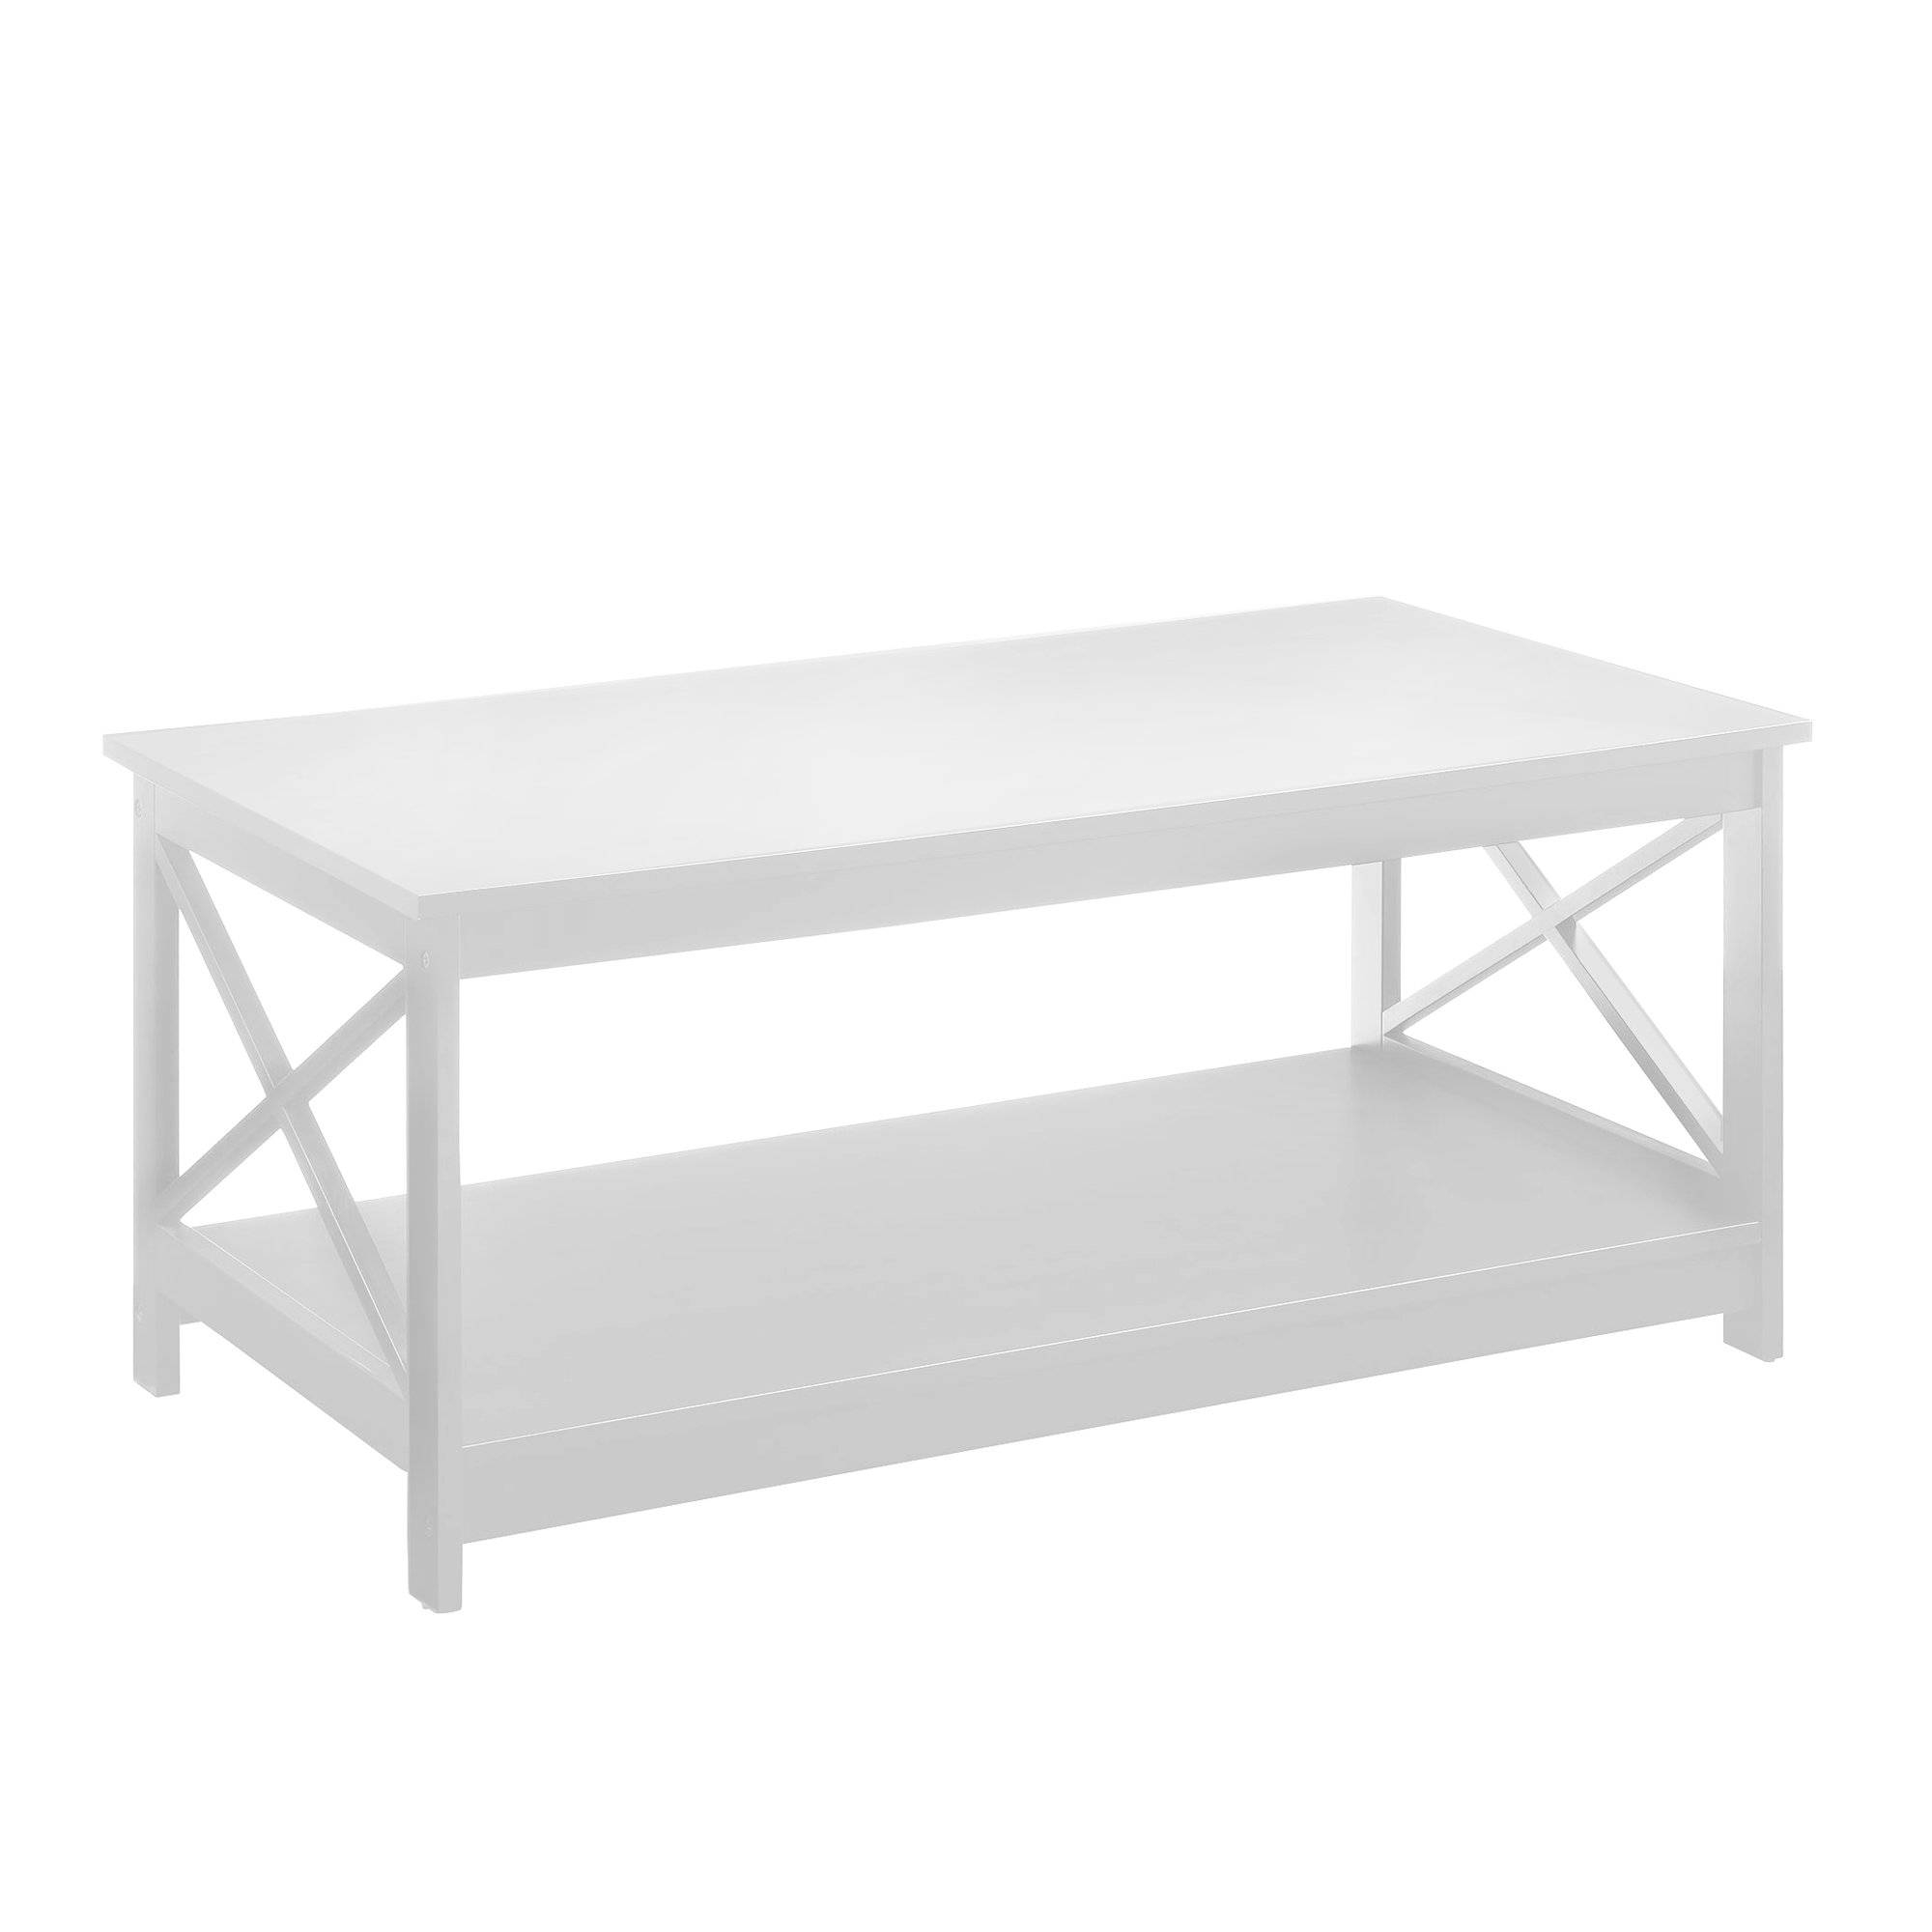 Furniture Home : Wood Table For Inspiring Oval Wooden Coffee for White Oval Coffee Tables (Image 14 of 30)